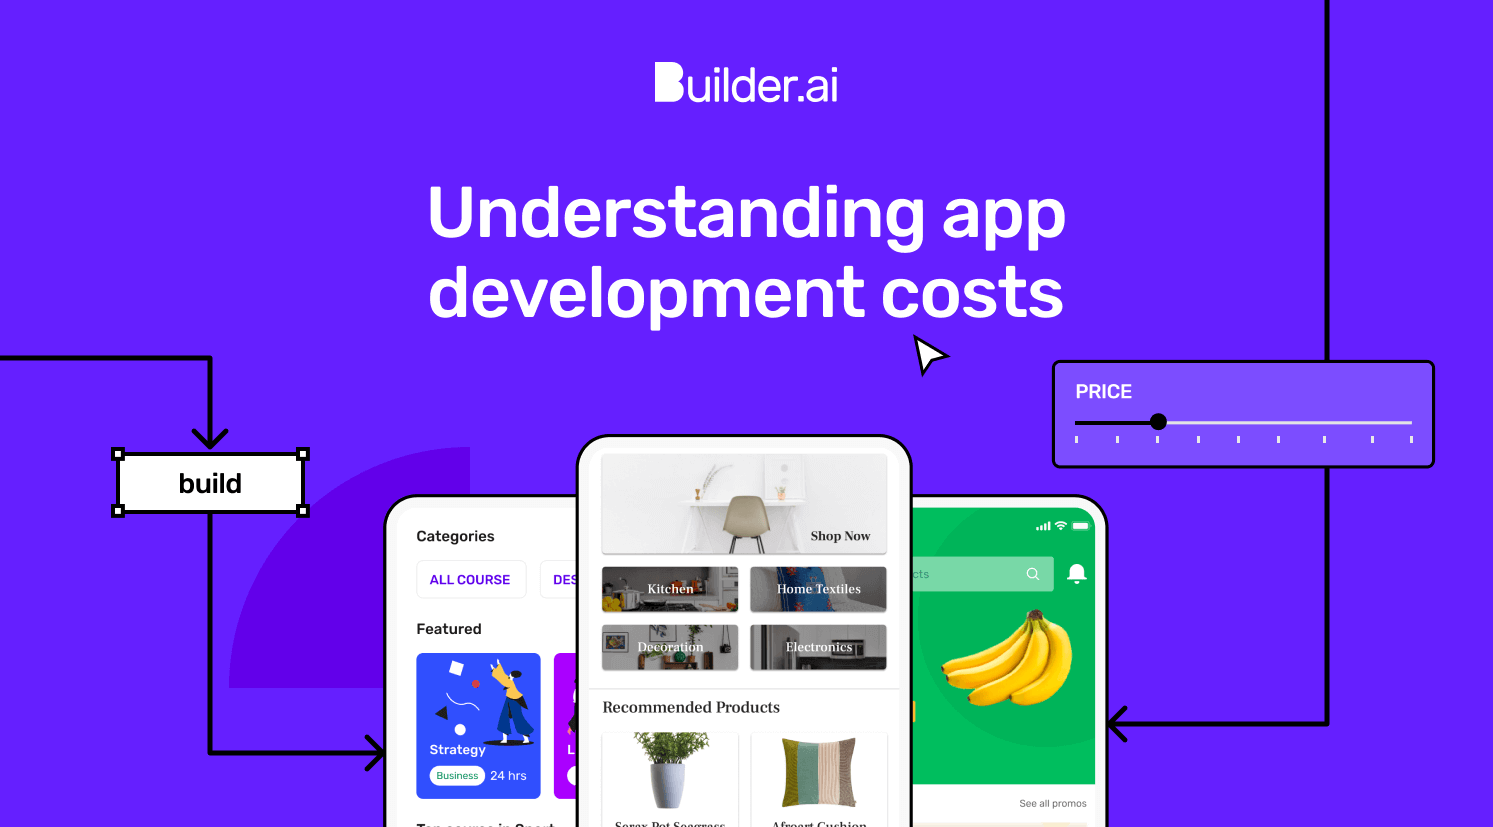 $1,000 vs $10,000 vs $100,000 Apps - What's the Difference?